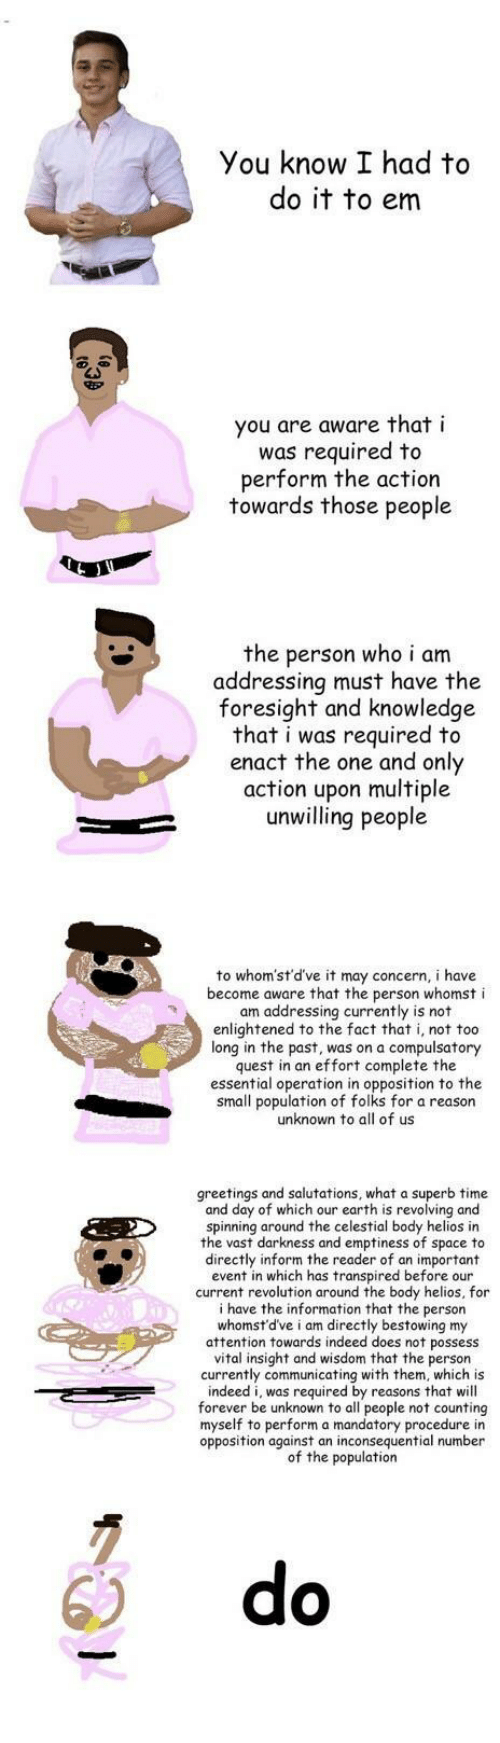 I Had To Do It To Em: You know I had to  do it to em  you are aware that i  was required to  perform the action  towards those people  the person who i am  addressing must have the  foresight and knowledge  that i was required to  enact the one and only  action upon multiple  unwilling people  to whom'st'd've it may concern, i have  become aware that the person whomst i  am addressing currently is not  enlightened to the fact that i, not too  long in the past, was on a compulsatory  quest in an effort complete the  essential operation in opposition to the  small population of folks for a reason  unknown to all of us  greetings and salutations, what a superb time  and day of which our earth is revolving and  spinning around the celestial body helios in  the vast darkness and emptiness of space to  directly inform the reader of an important  event in which has transpired before our  current revolution around the body helios, for  i have the information that the person  whomst'd've i am directly bestowing my  attention towards indeed does not possess  vital insight and wisdom that the person  currently communicating with them, which is  indeed i, was required by reasons that will  forever be unknown to all people not counting  myself to perform a mandatory procedure in  opposition against an inconsequential number  of the population  6) do